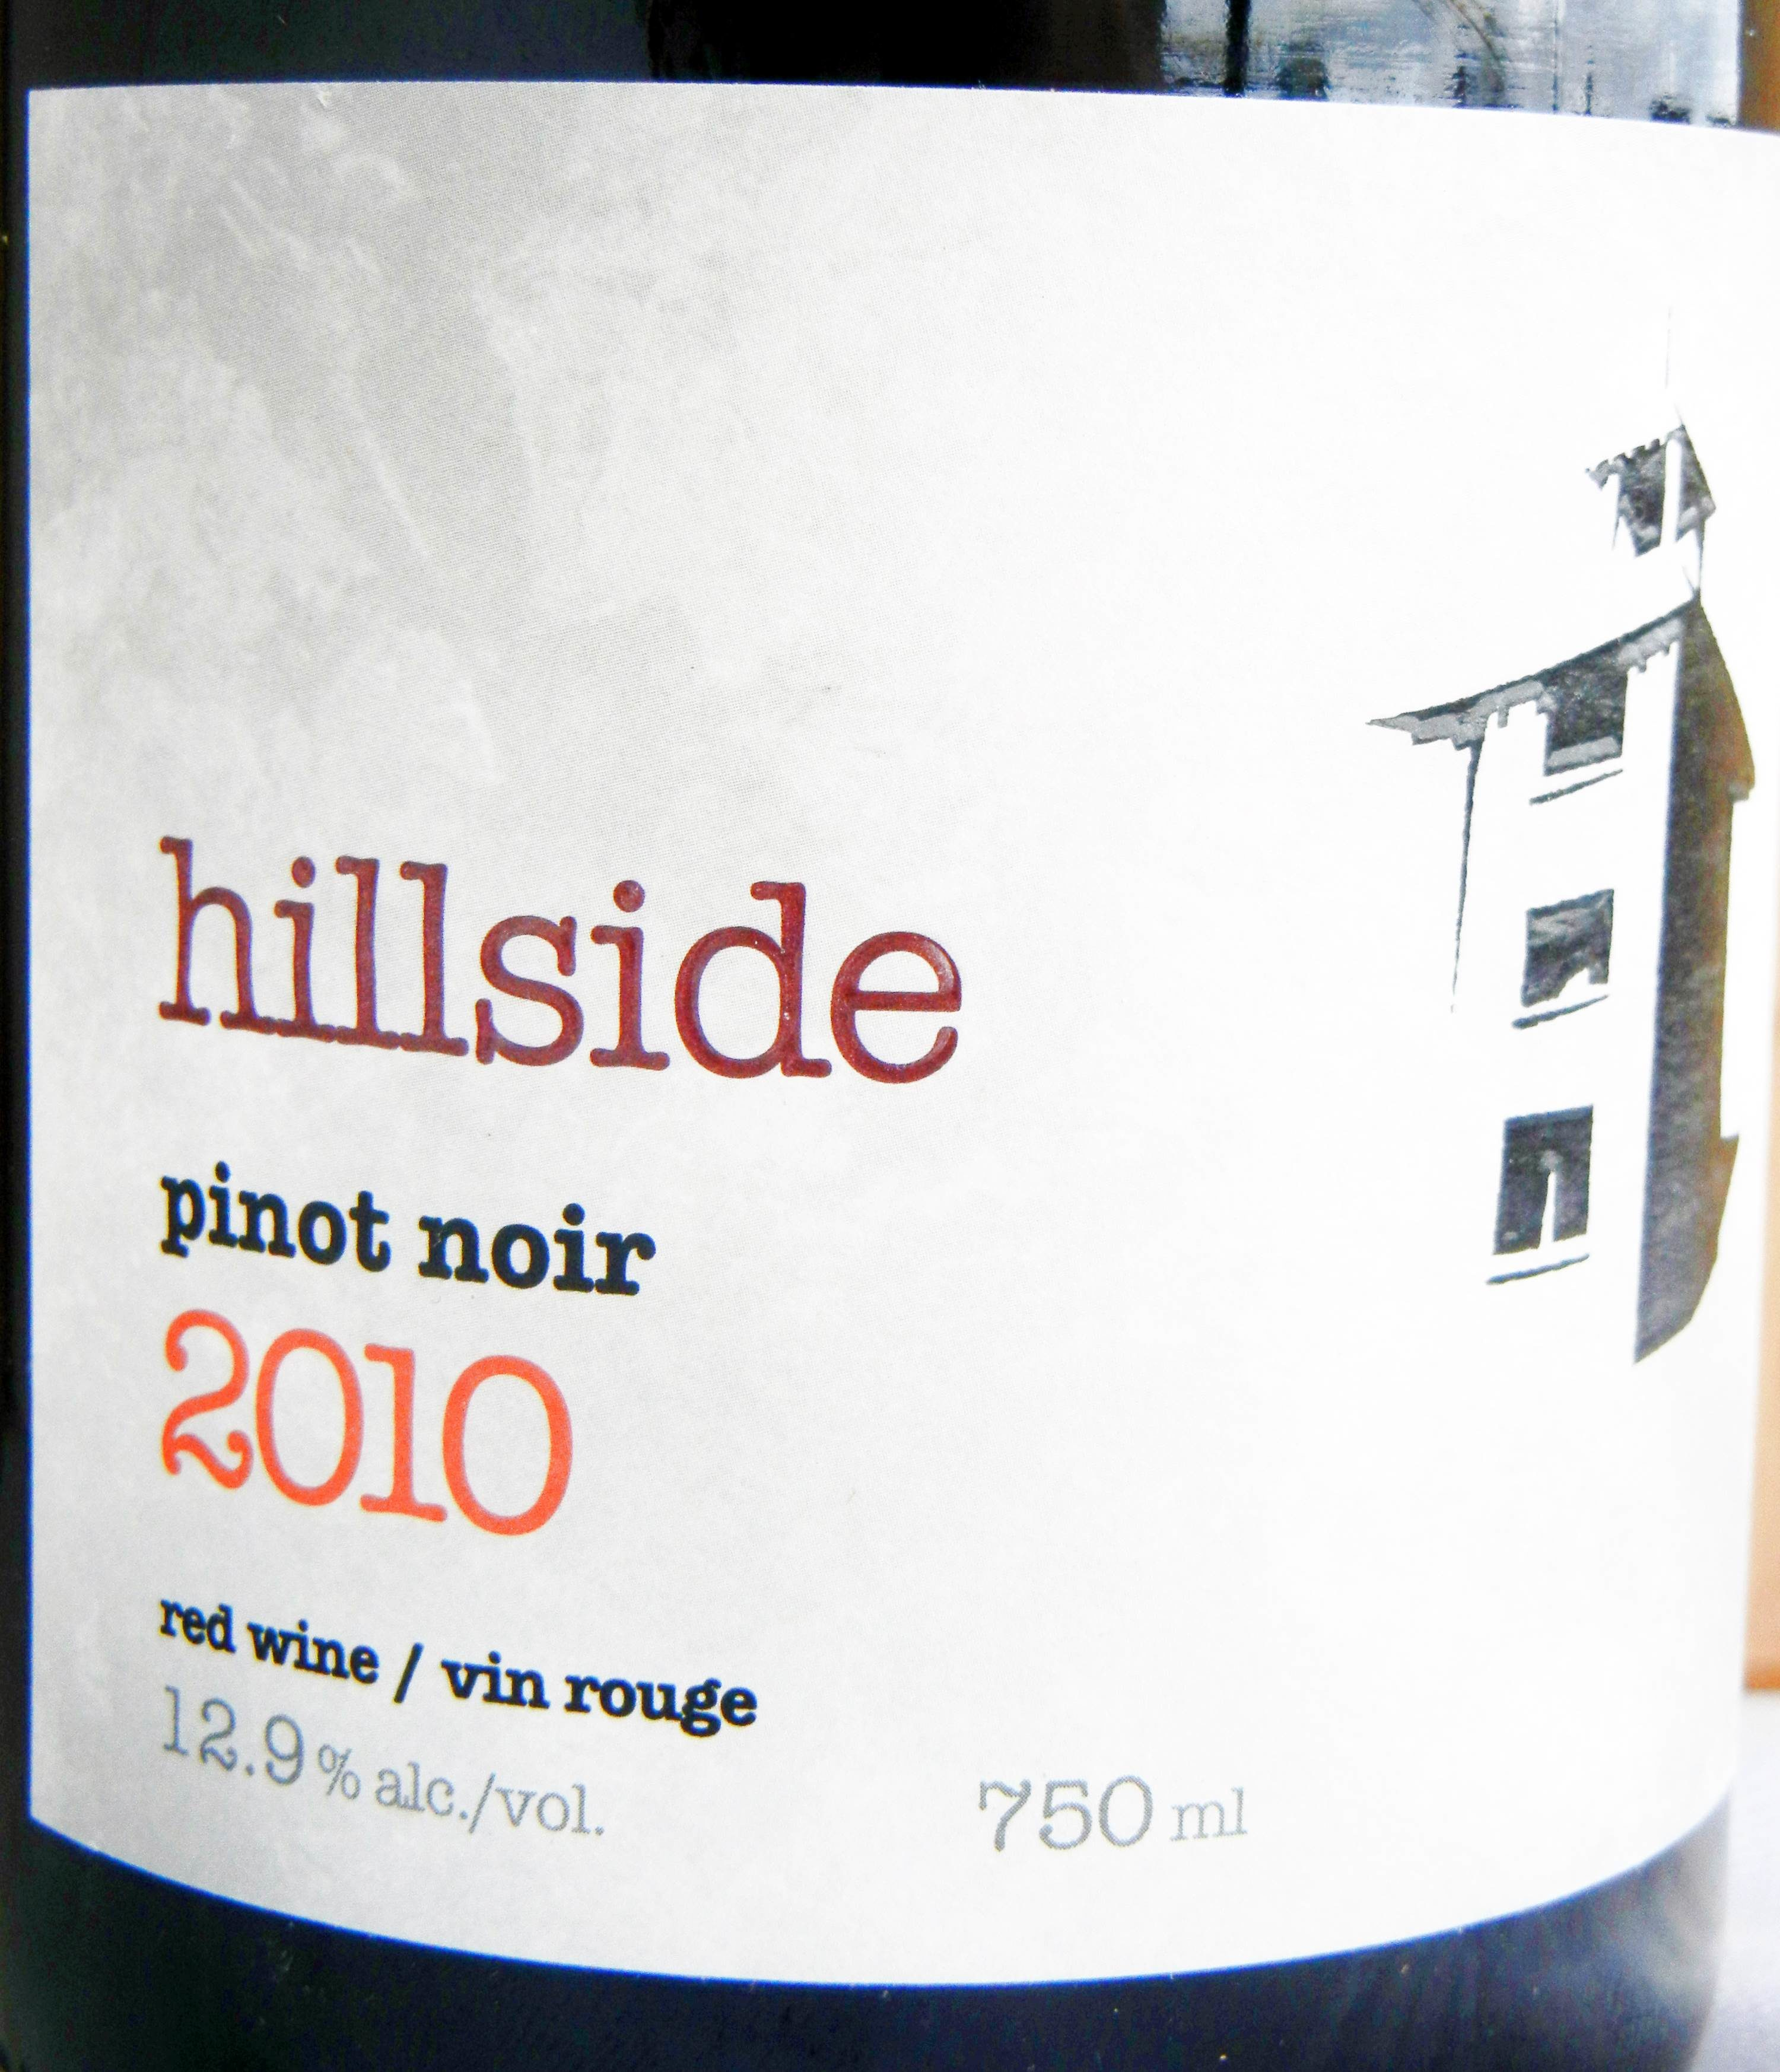 Hillside Pinot Noir 2010 Label - BC Pinot Noir Tasting Review 14